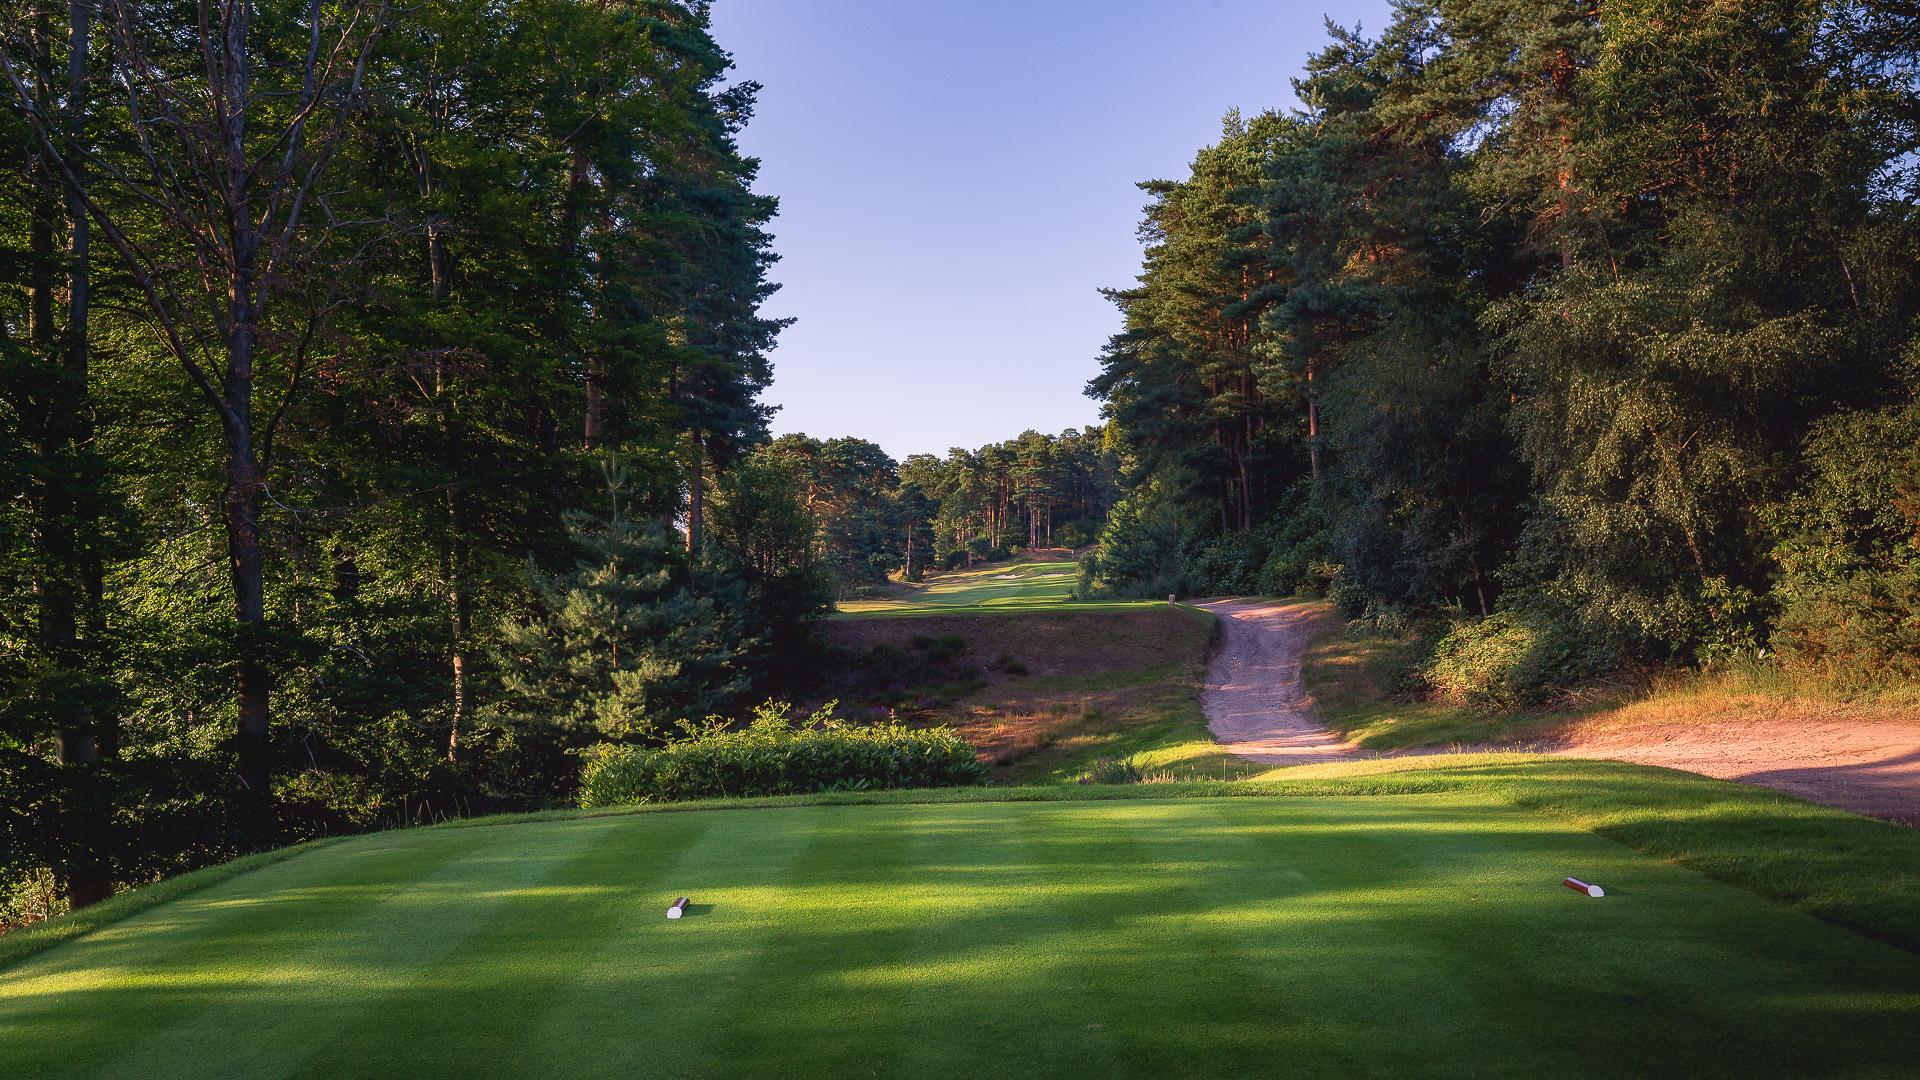 27th-Hole-St-Georges-Hill-Golf-Club-2047-Edit